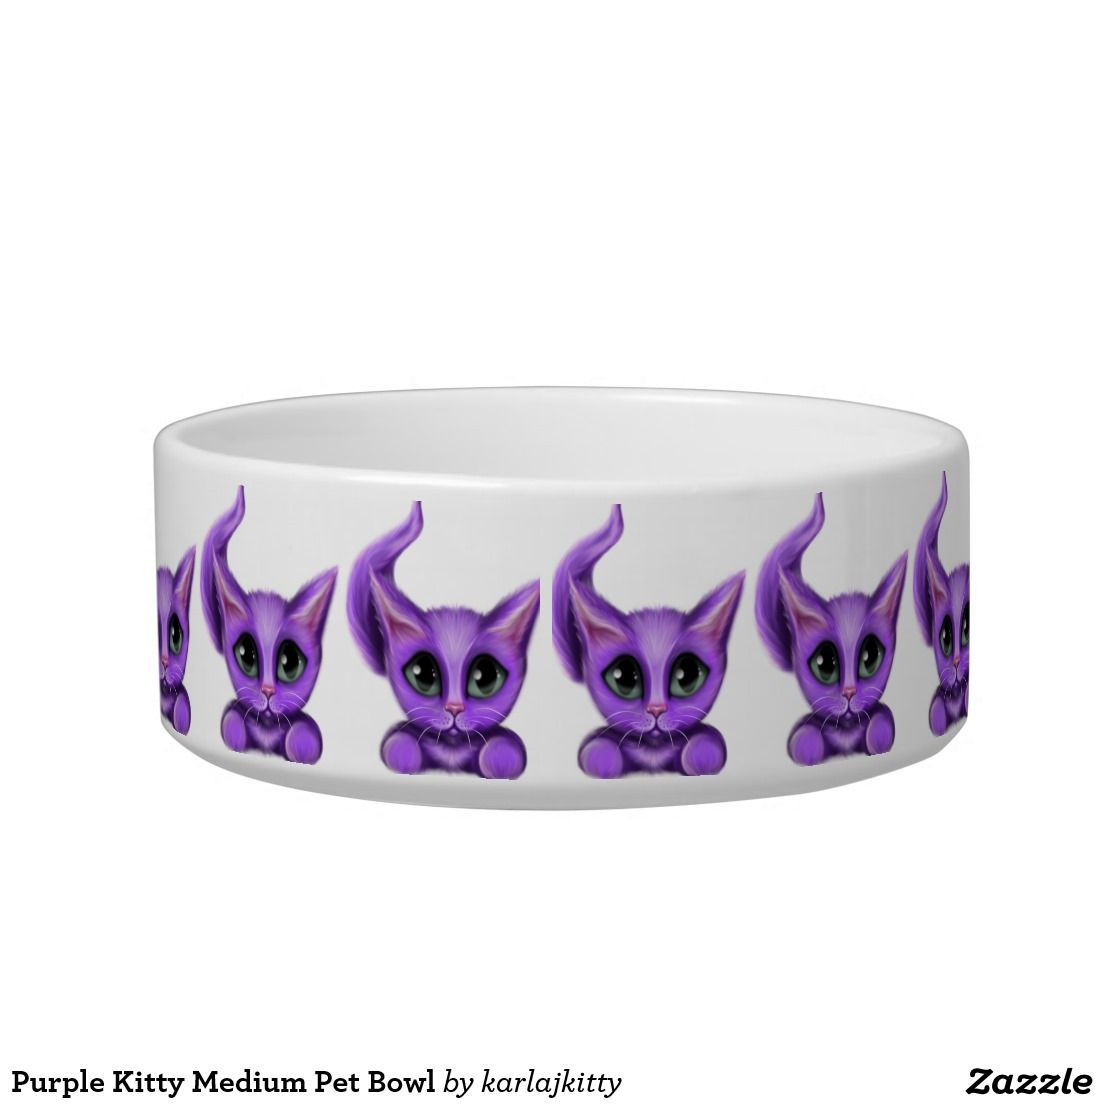 Purple Kitty Medium Pet Bowl Little Purple Kitty Tiled All Around The Bowl Shown On A White Background Pet Bowls Cat Bowls Bowl